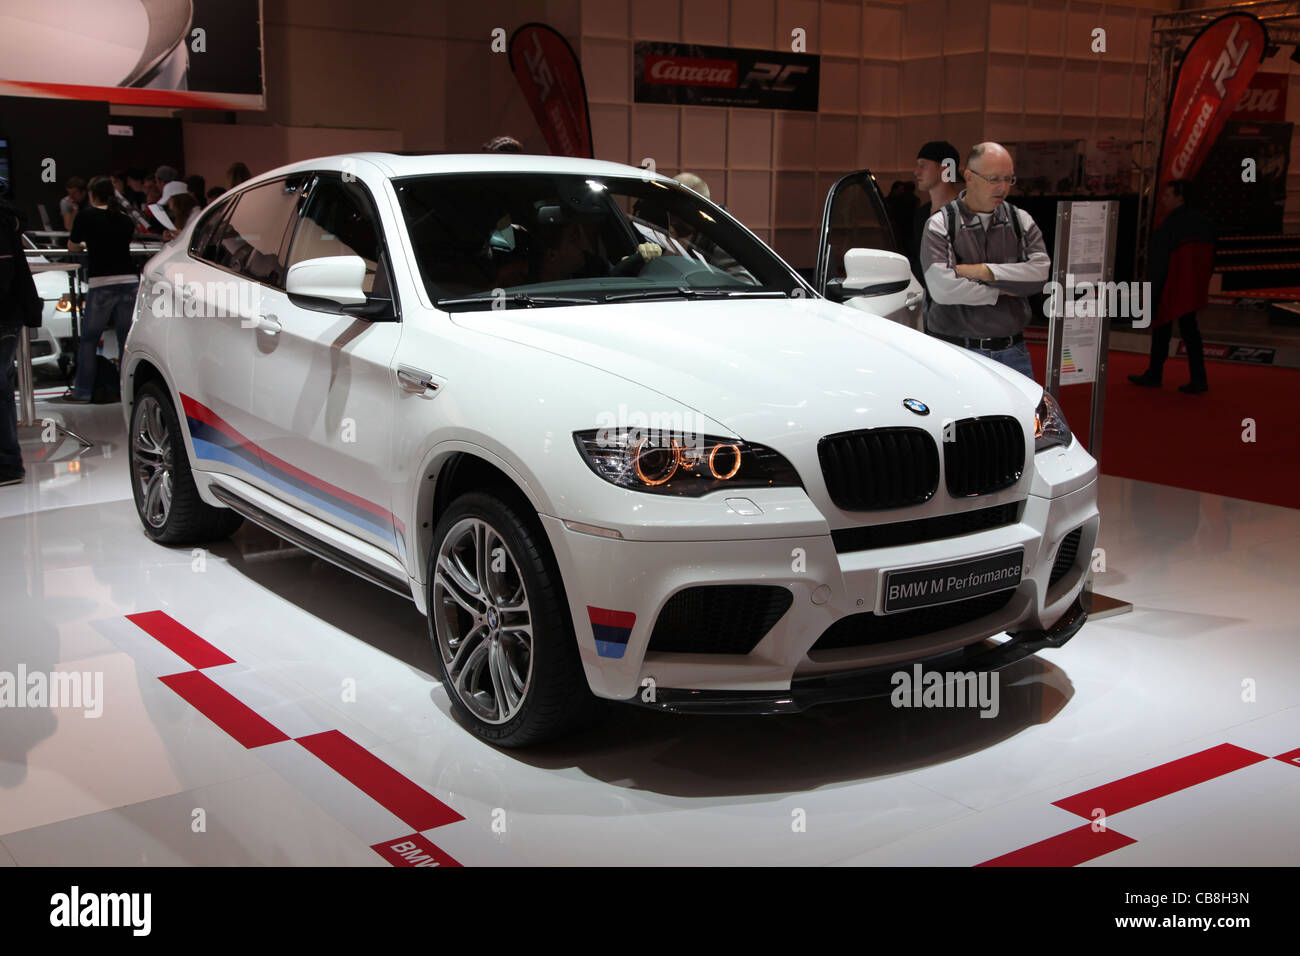 BMW X5 M Performance shown at the Essen Motor Show in Essen, Germany, on November 29, 2011 - Stock Image